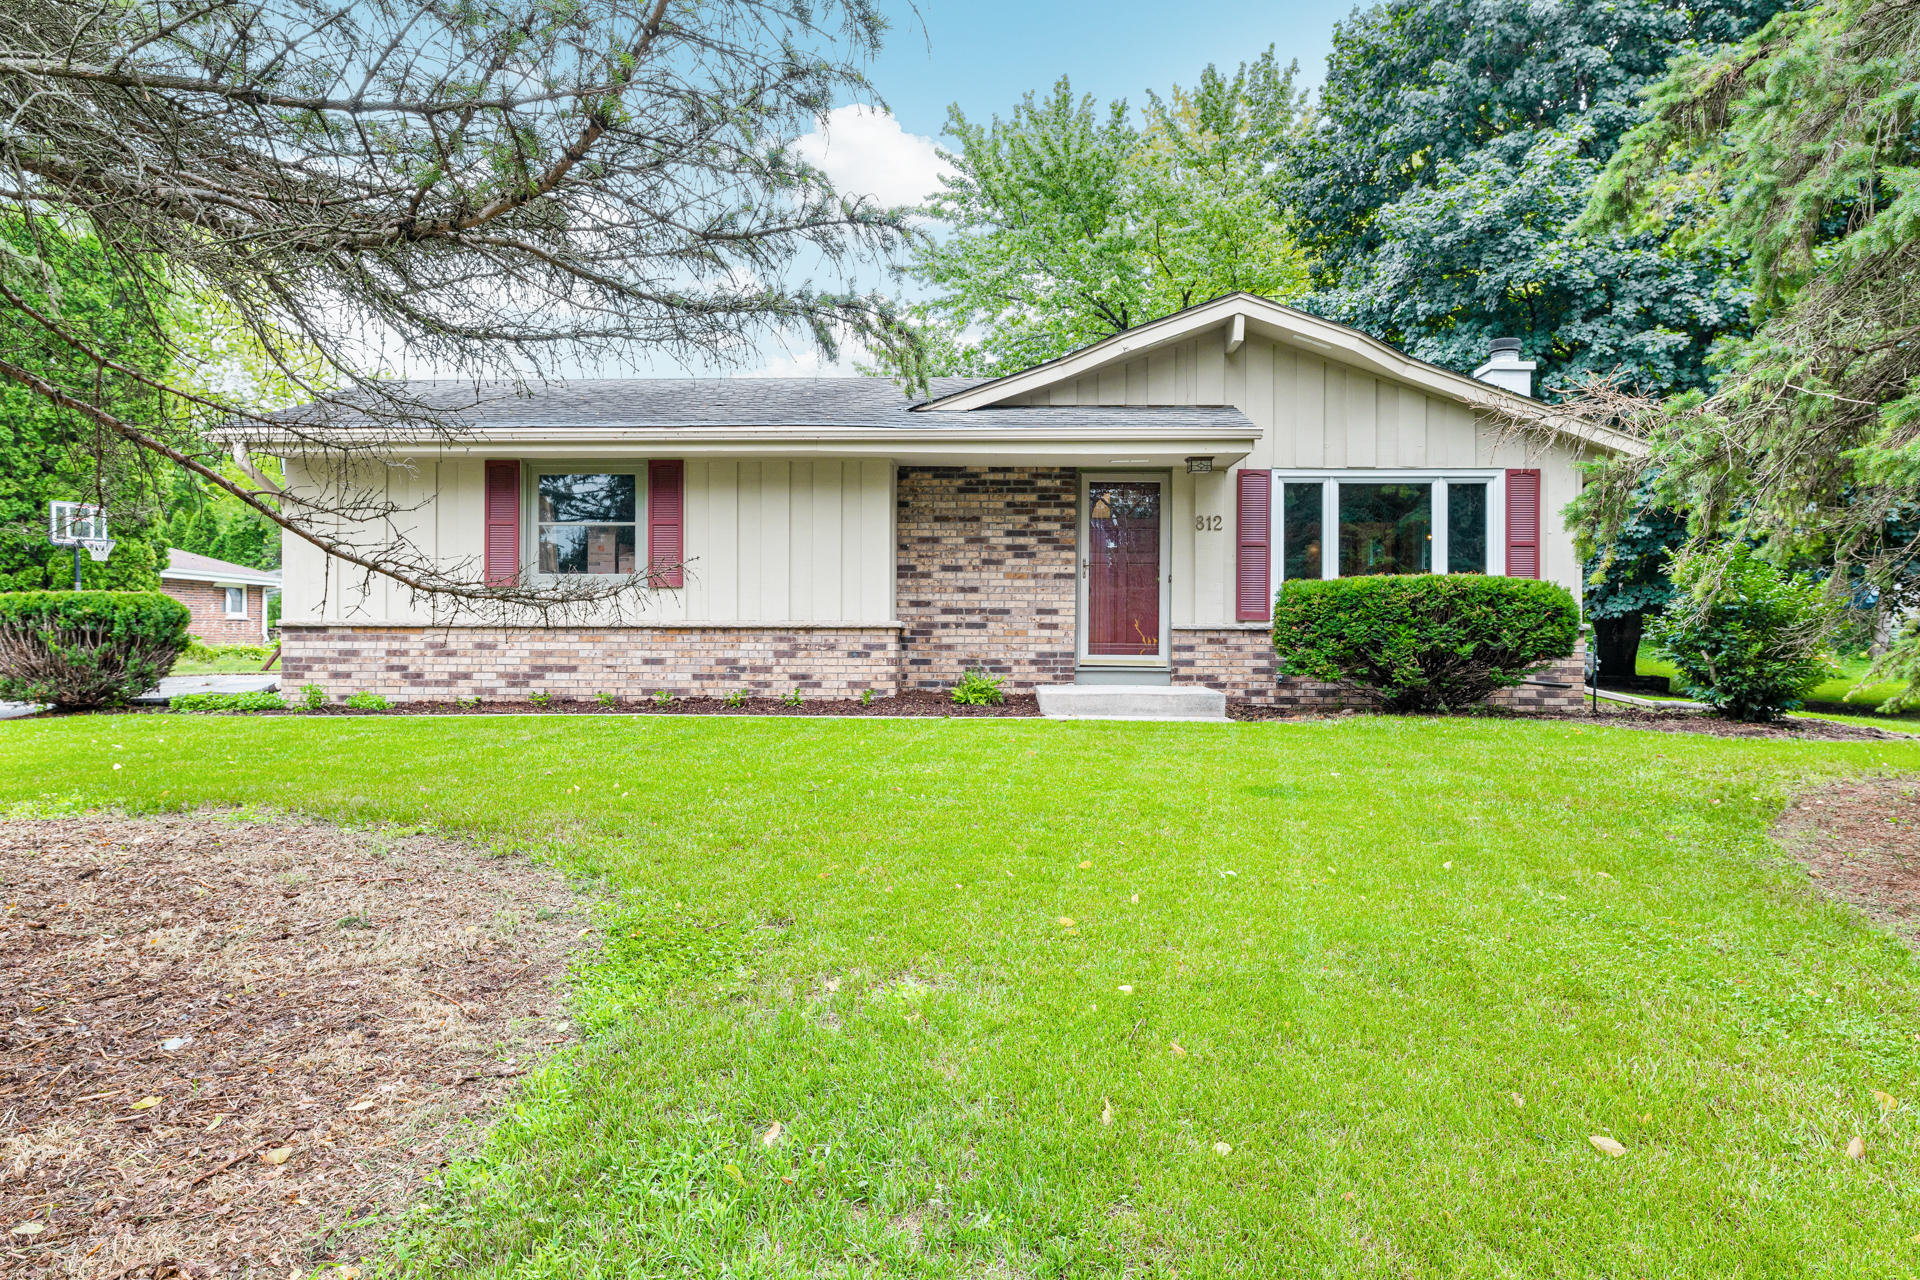 812 Merton Ave, Hartland, Wisconsin 53029, 3 Bedrooms Bedrooms, 7 Rooms Rooms,1 BathroomBathrooms,Single-Family,For Sale,Merton Ave,1755359